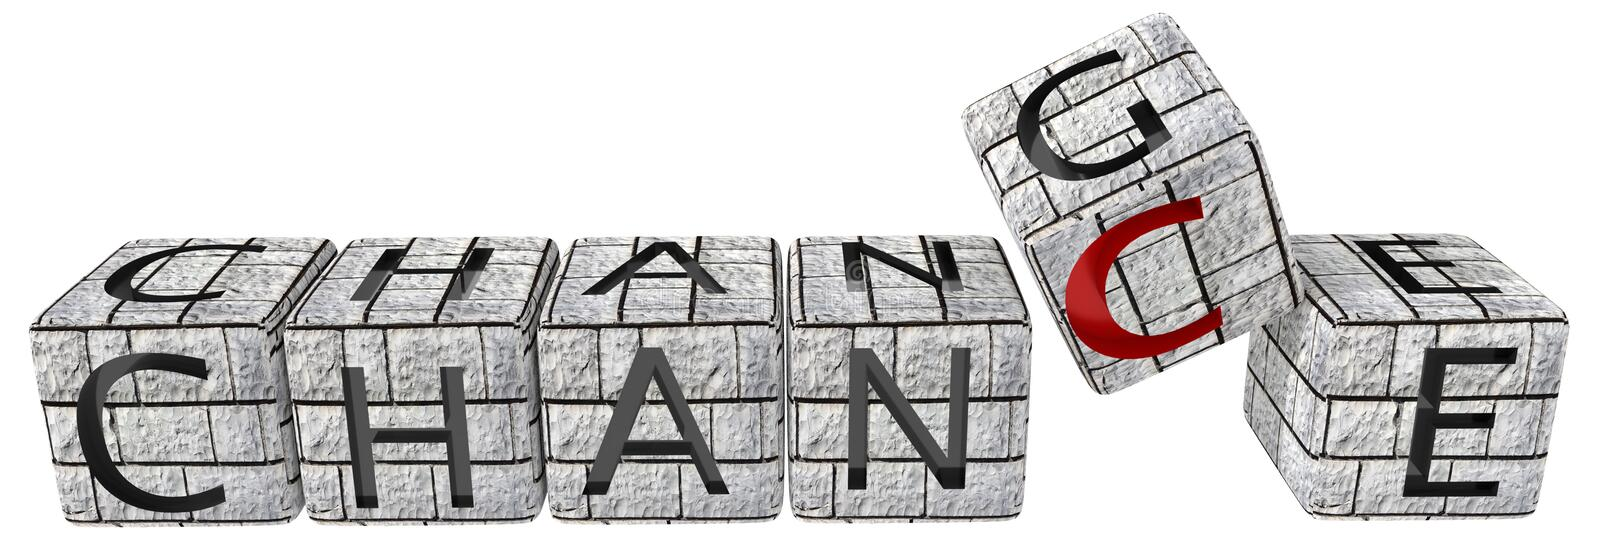 Change chance wall  dice  red text - 3d rendering stock illustration